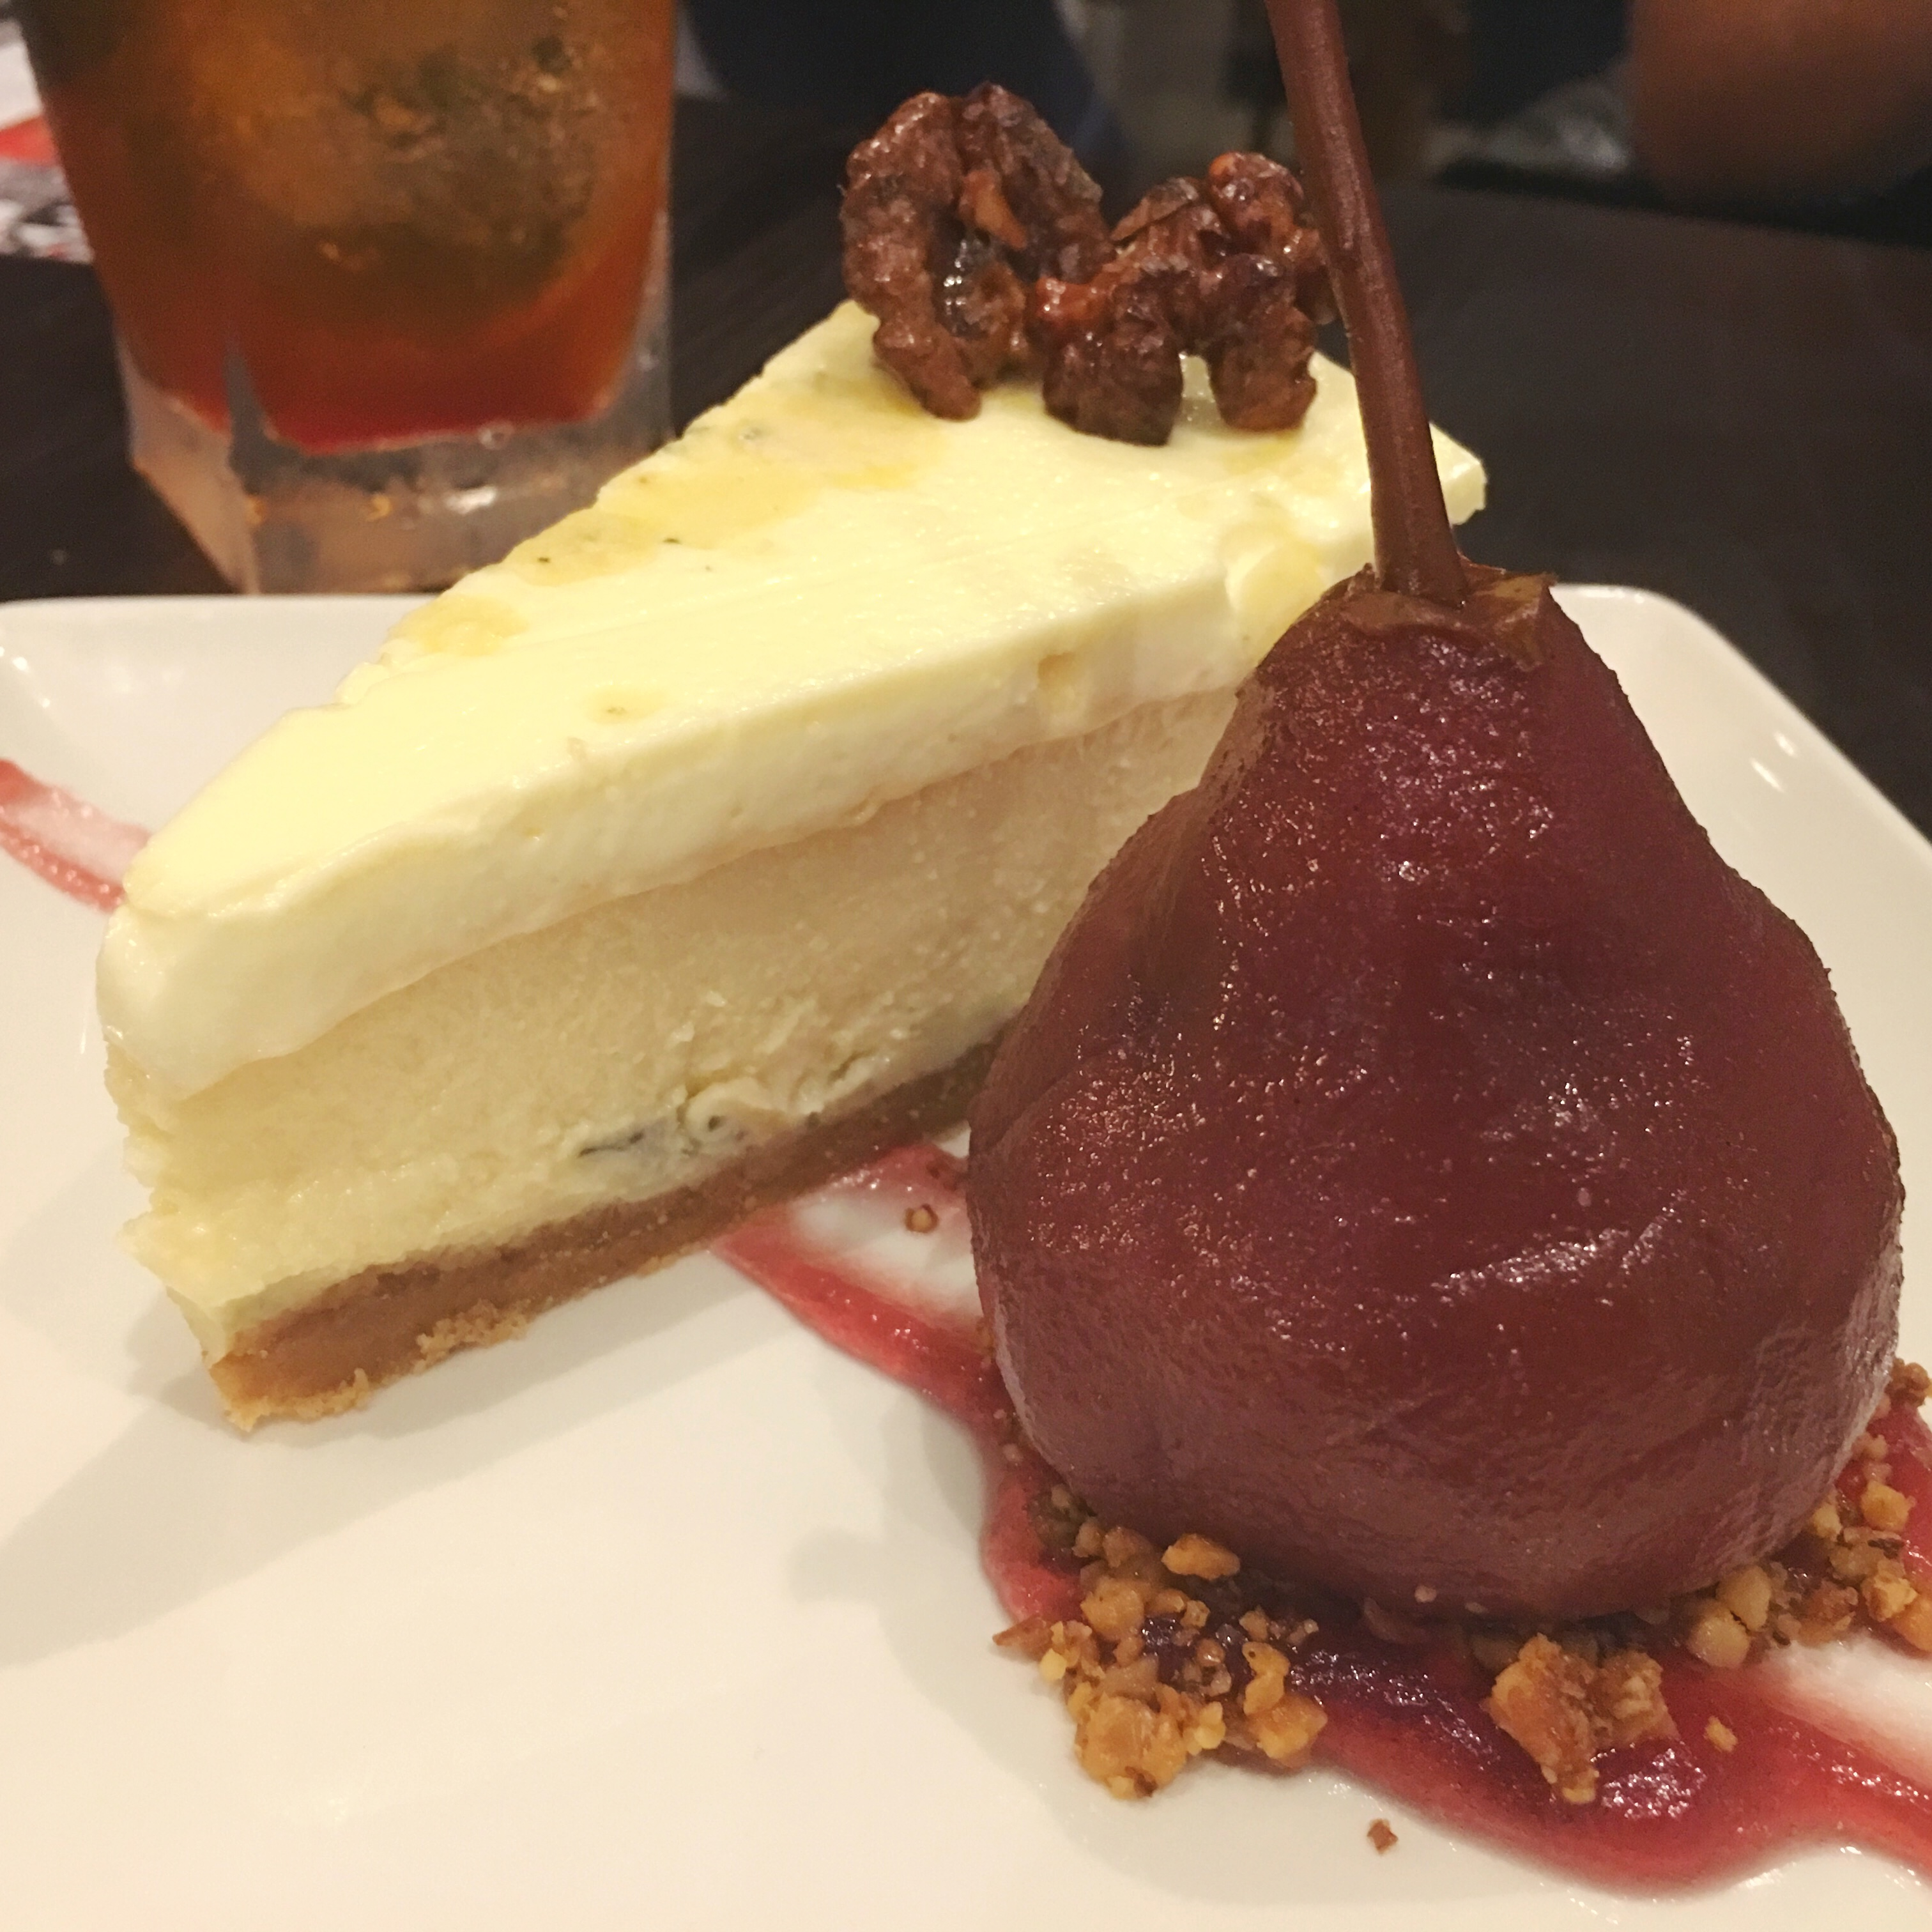 Gorgonzola Cheesecake at P.F. Chang's in London